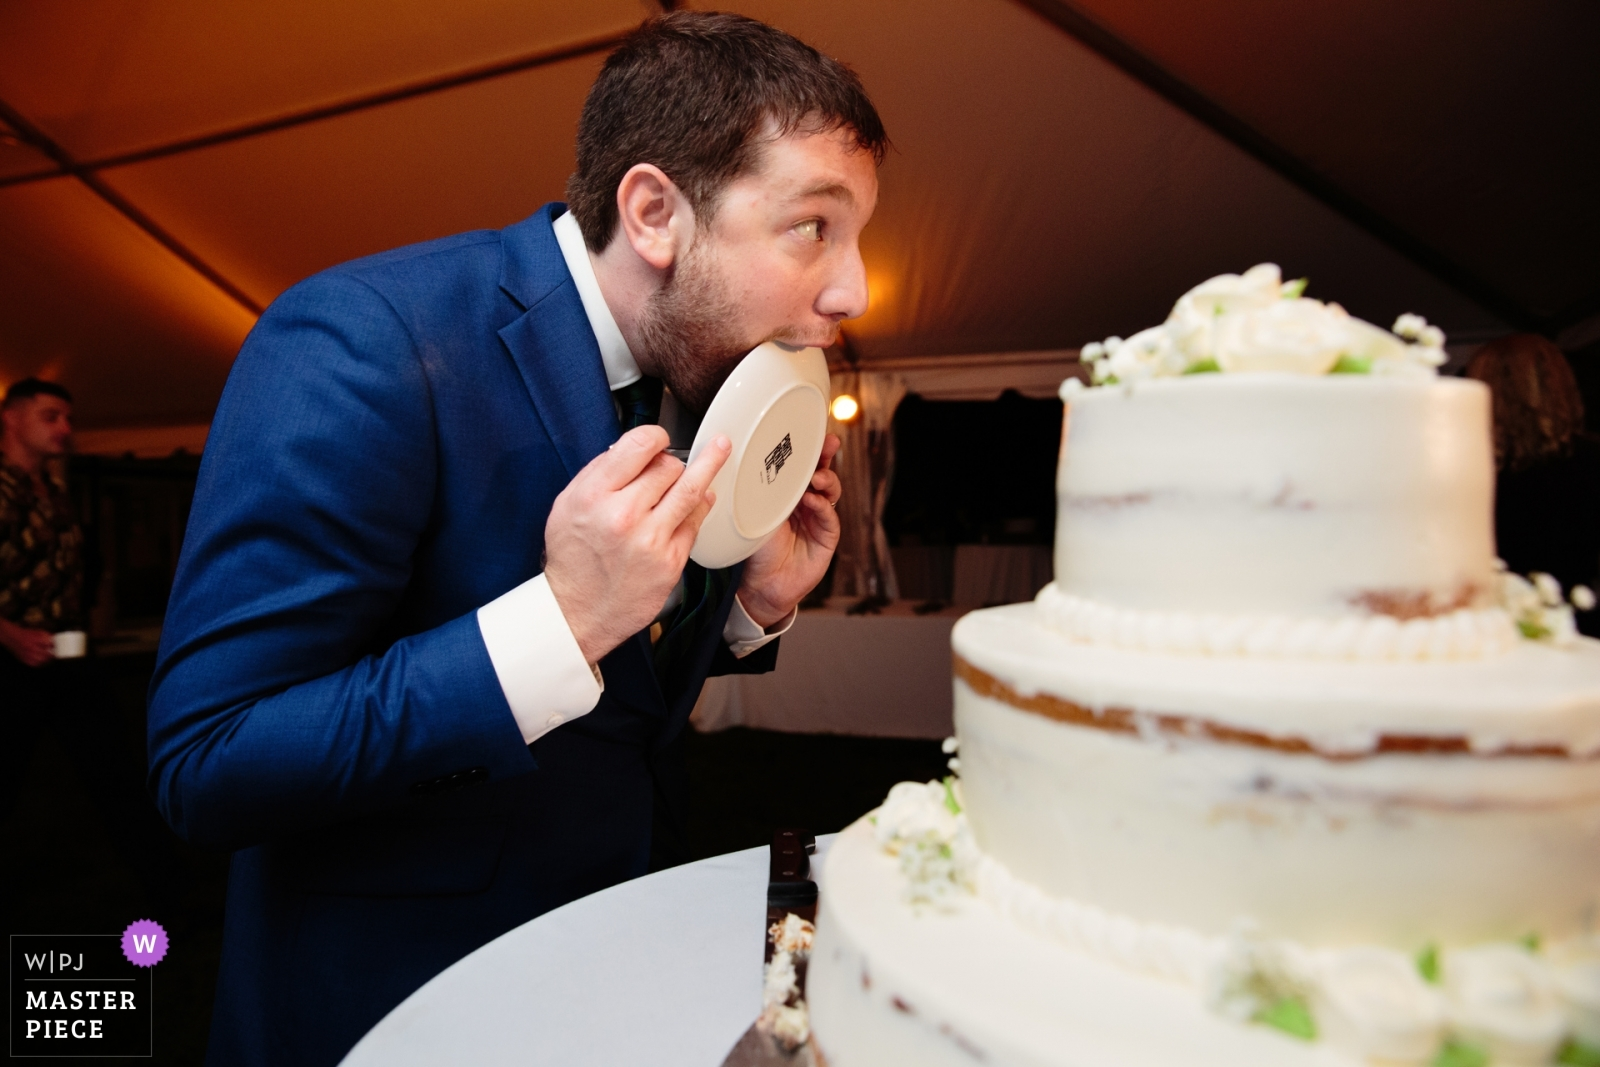 Groom Licks The Plate, The groom licks the plate!!!!! - New York - Long Island, United States Wedding Photography -  | Northport Long Island family home, Reception